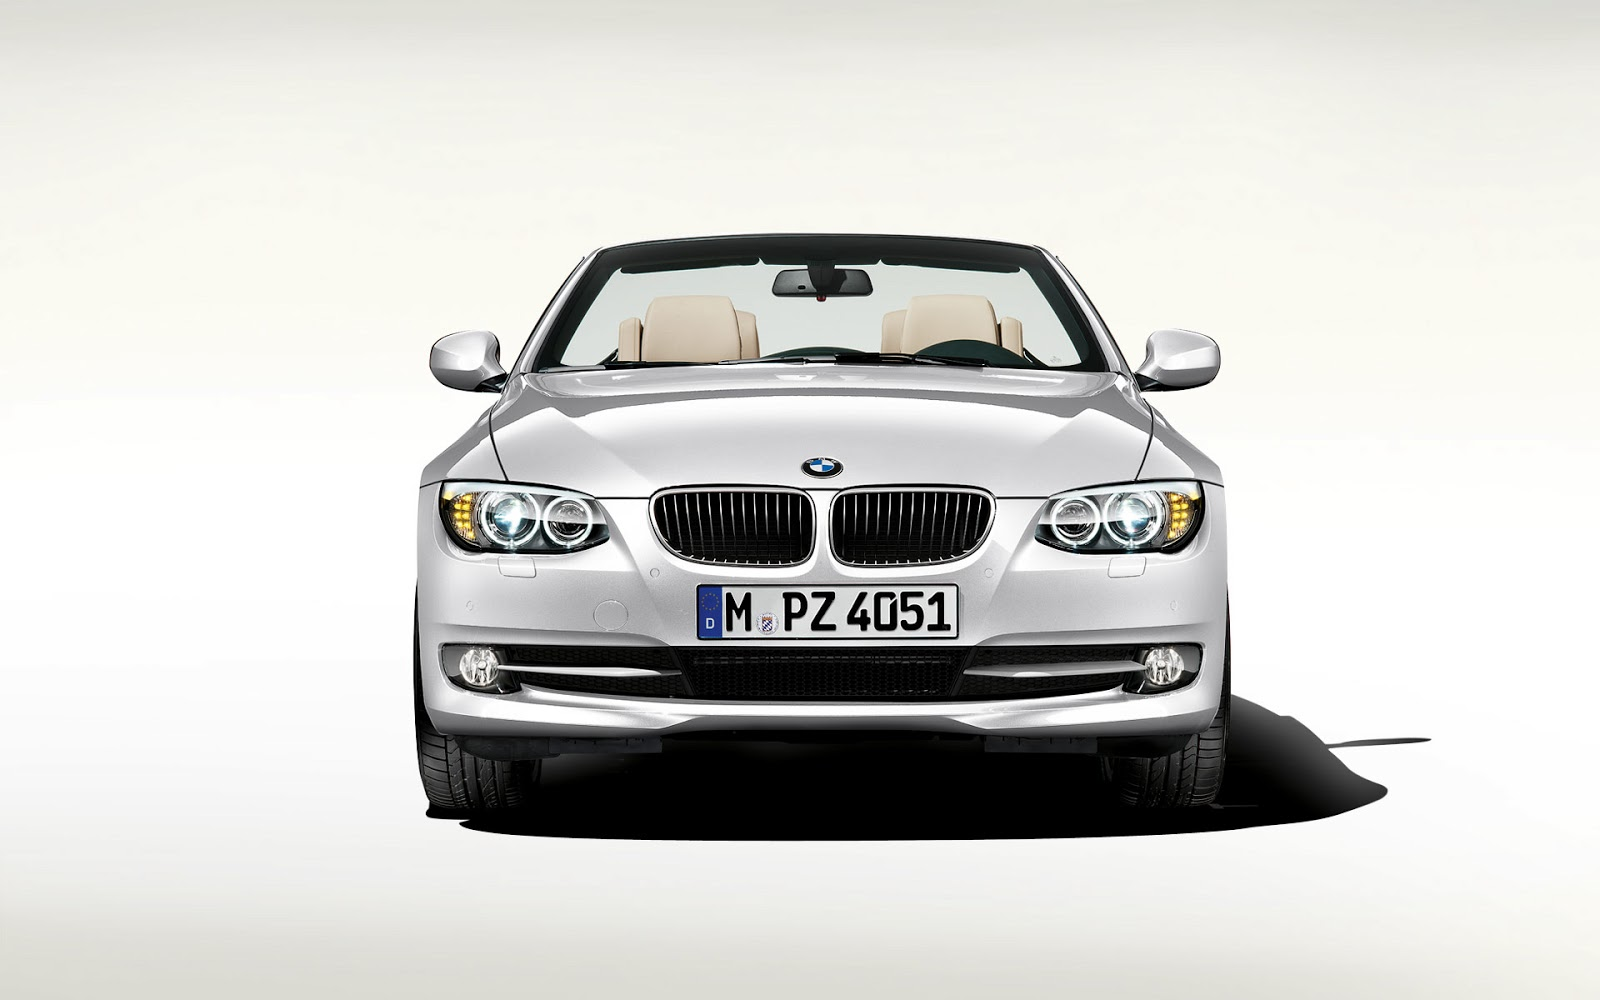 Front View Bmw New 3 Series Convertible White Car Reviews New